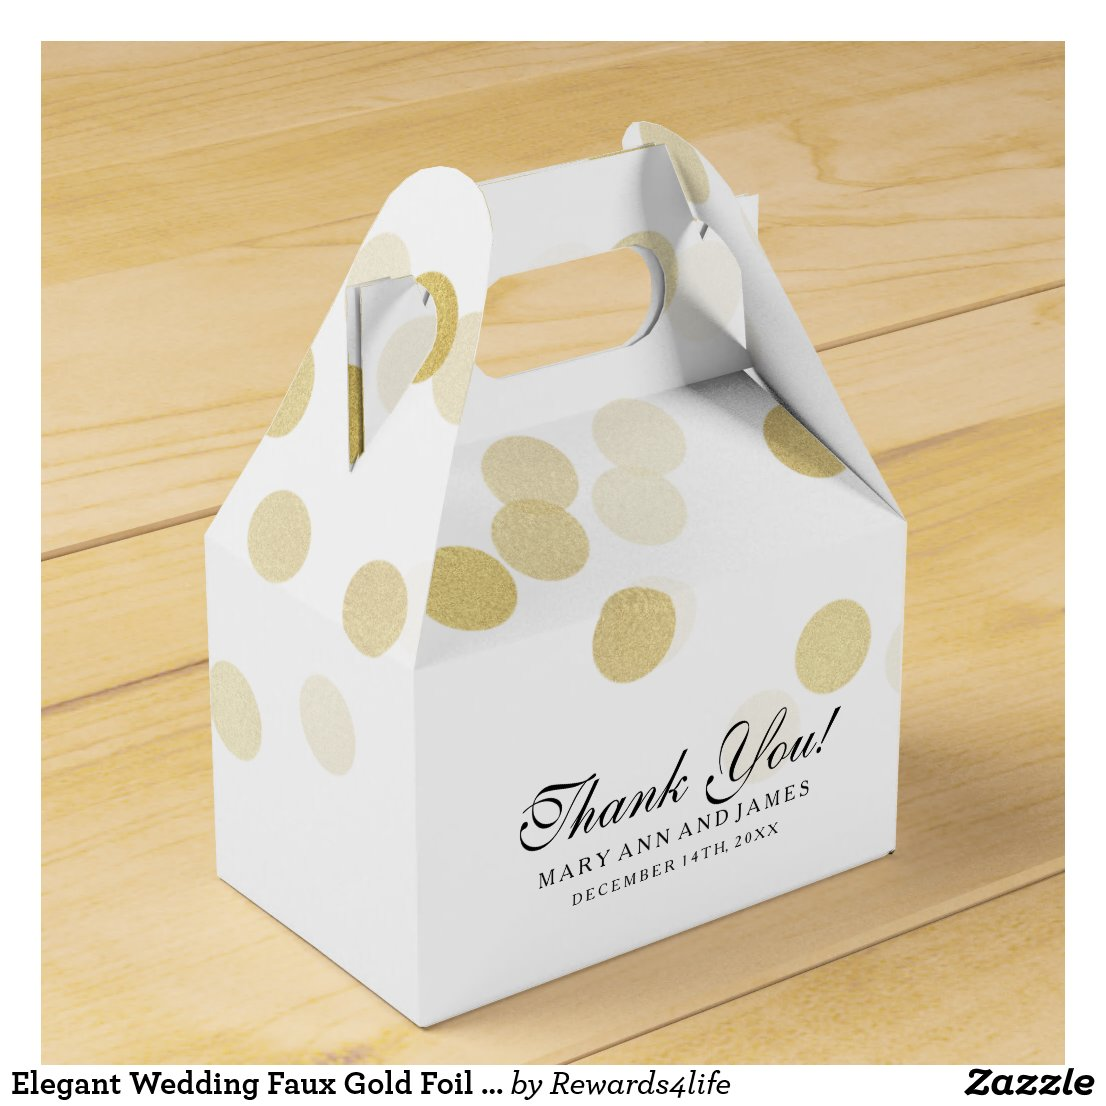 Elegant Wedding Faux Gold Foil Glitter Lights Favour Box